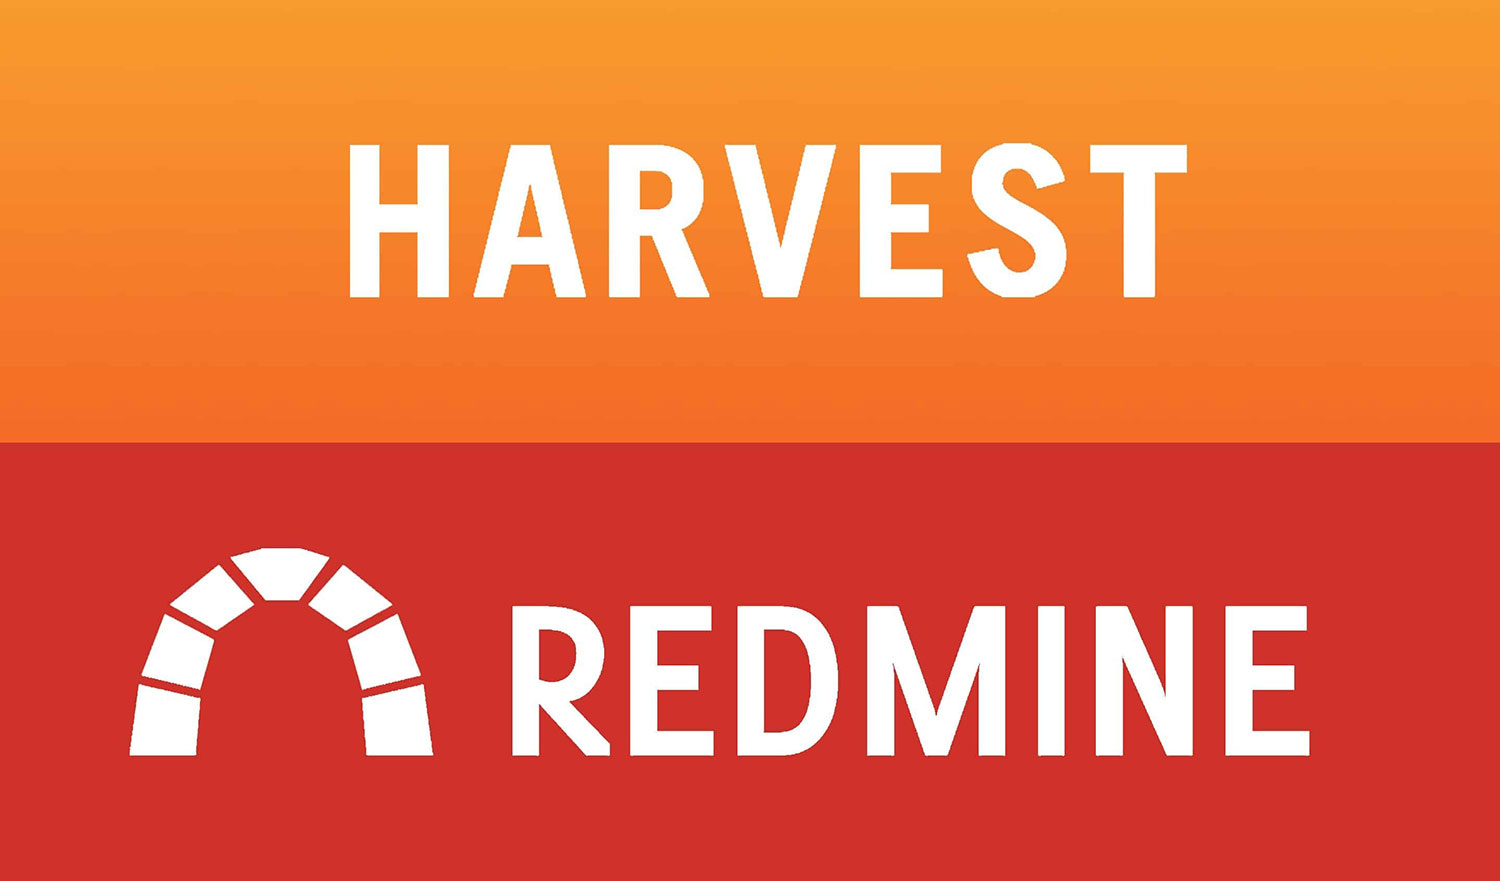 Harvest time keeping web application brand logo stacked on top of and Redmine project management web application brand logo